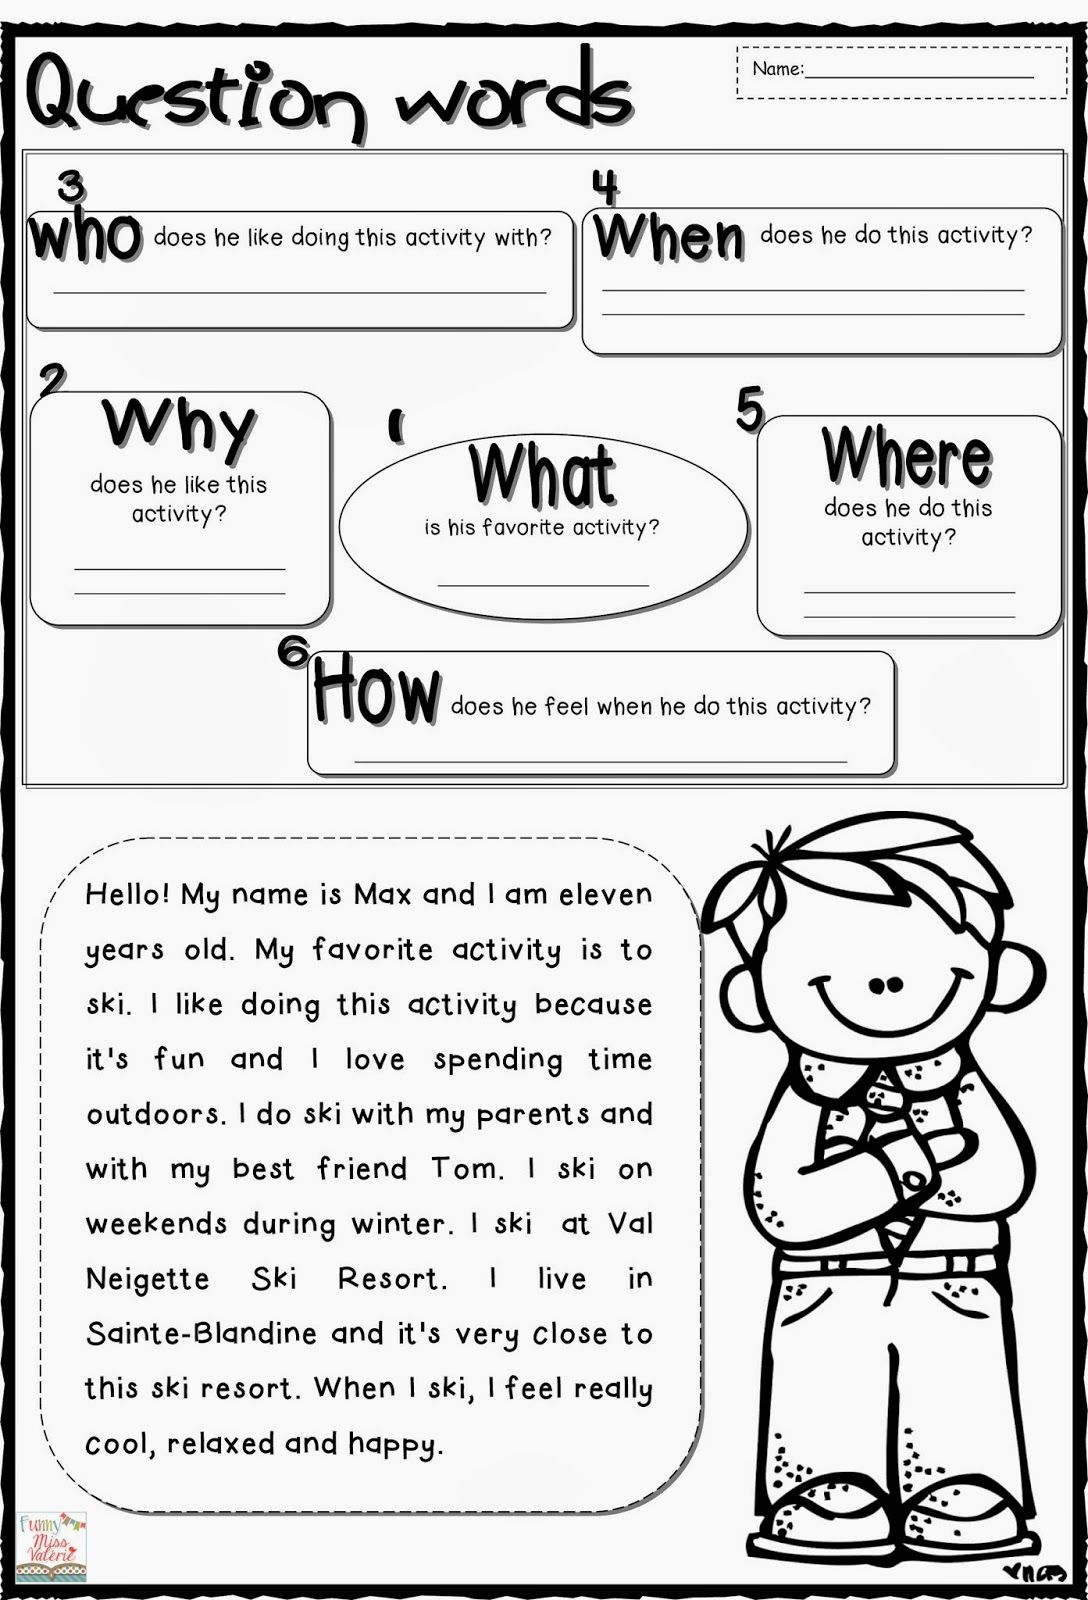 small resolution of Question Words   Reading comprehension worksheets